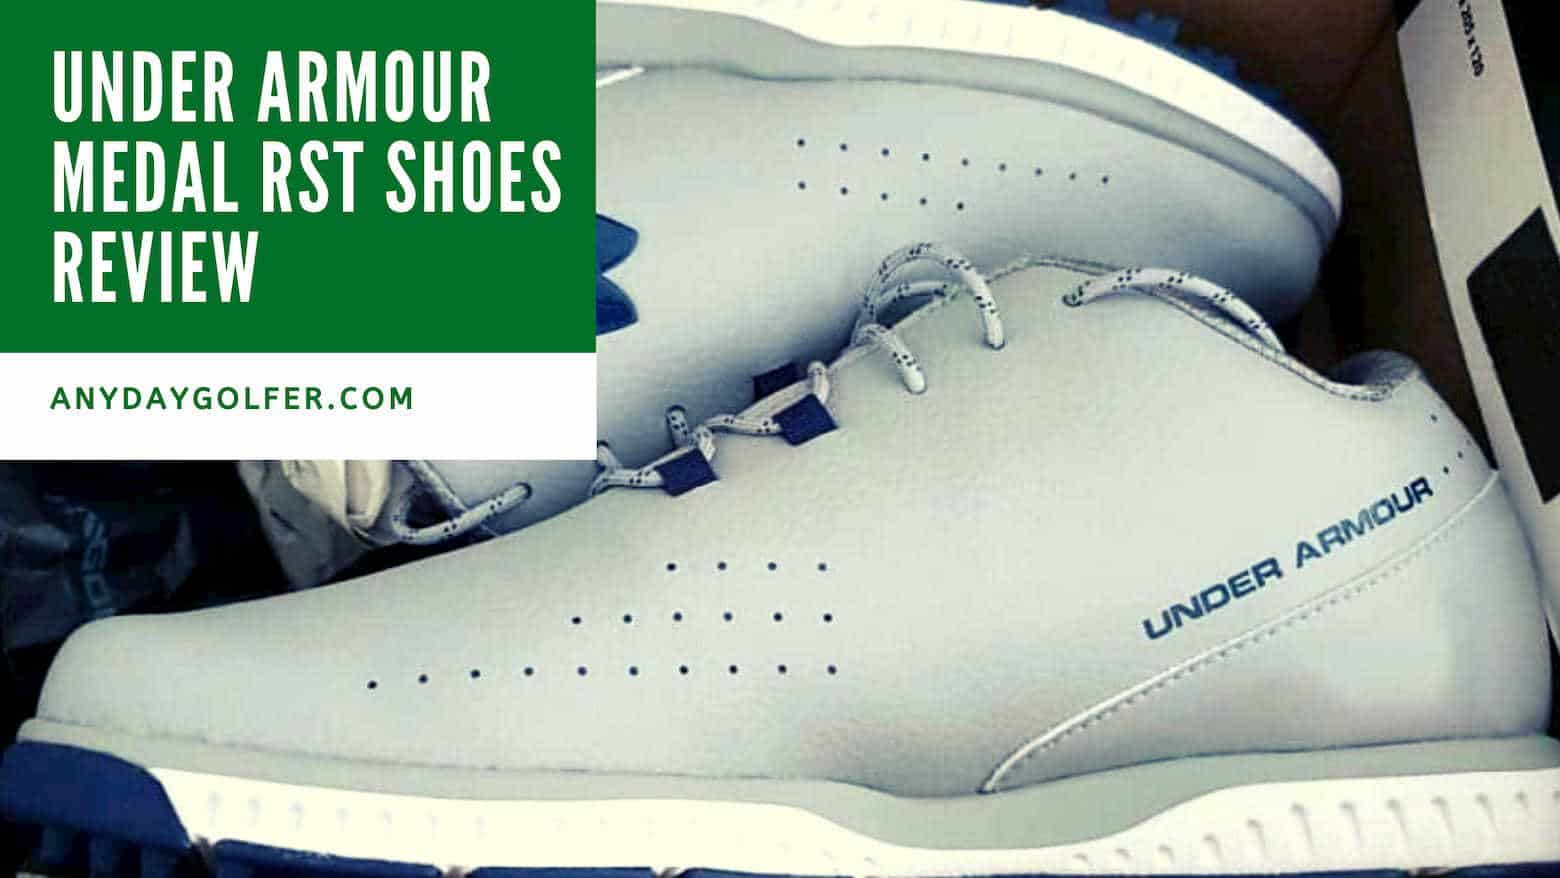 Under Armour Medal RST Shoes Review \u0026 Guide